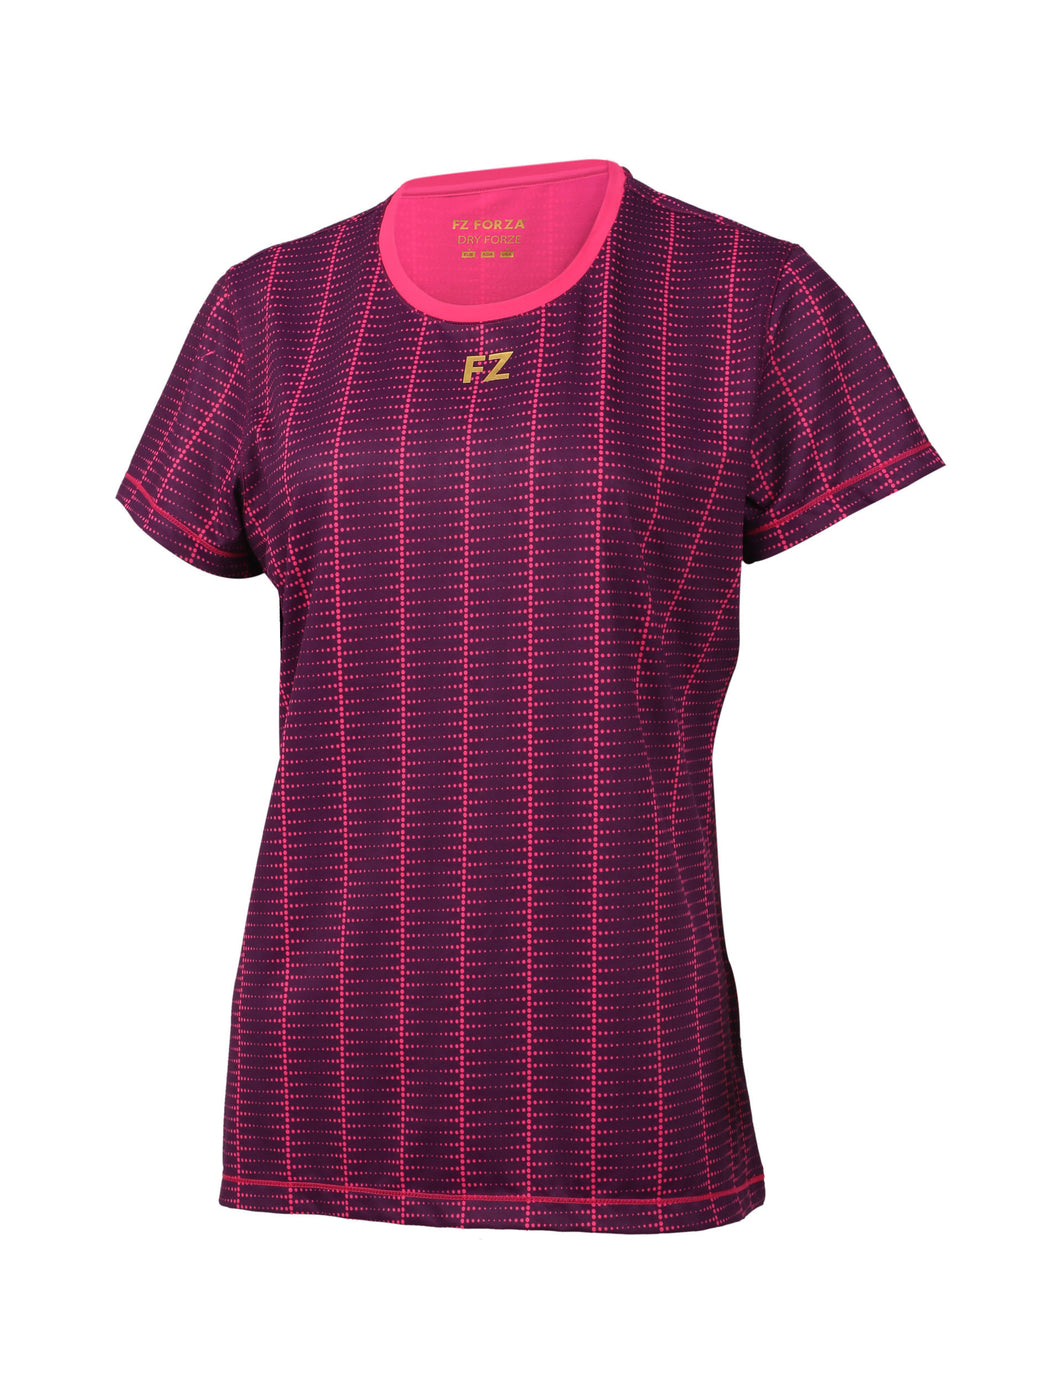 FORZA BERGANA T-SHIRT (PICKLED BEET)